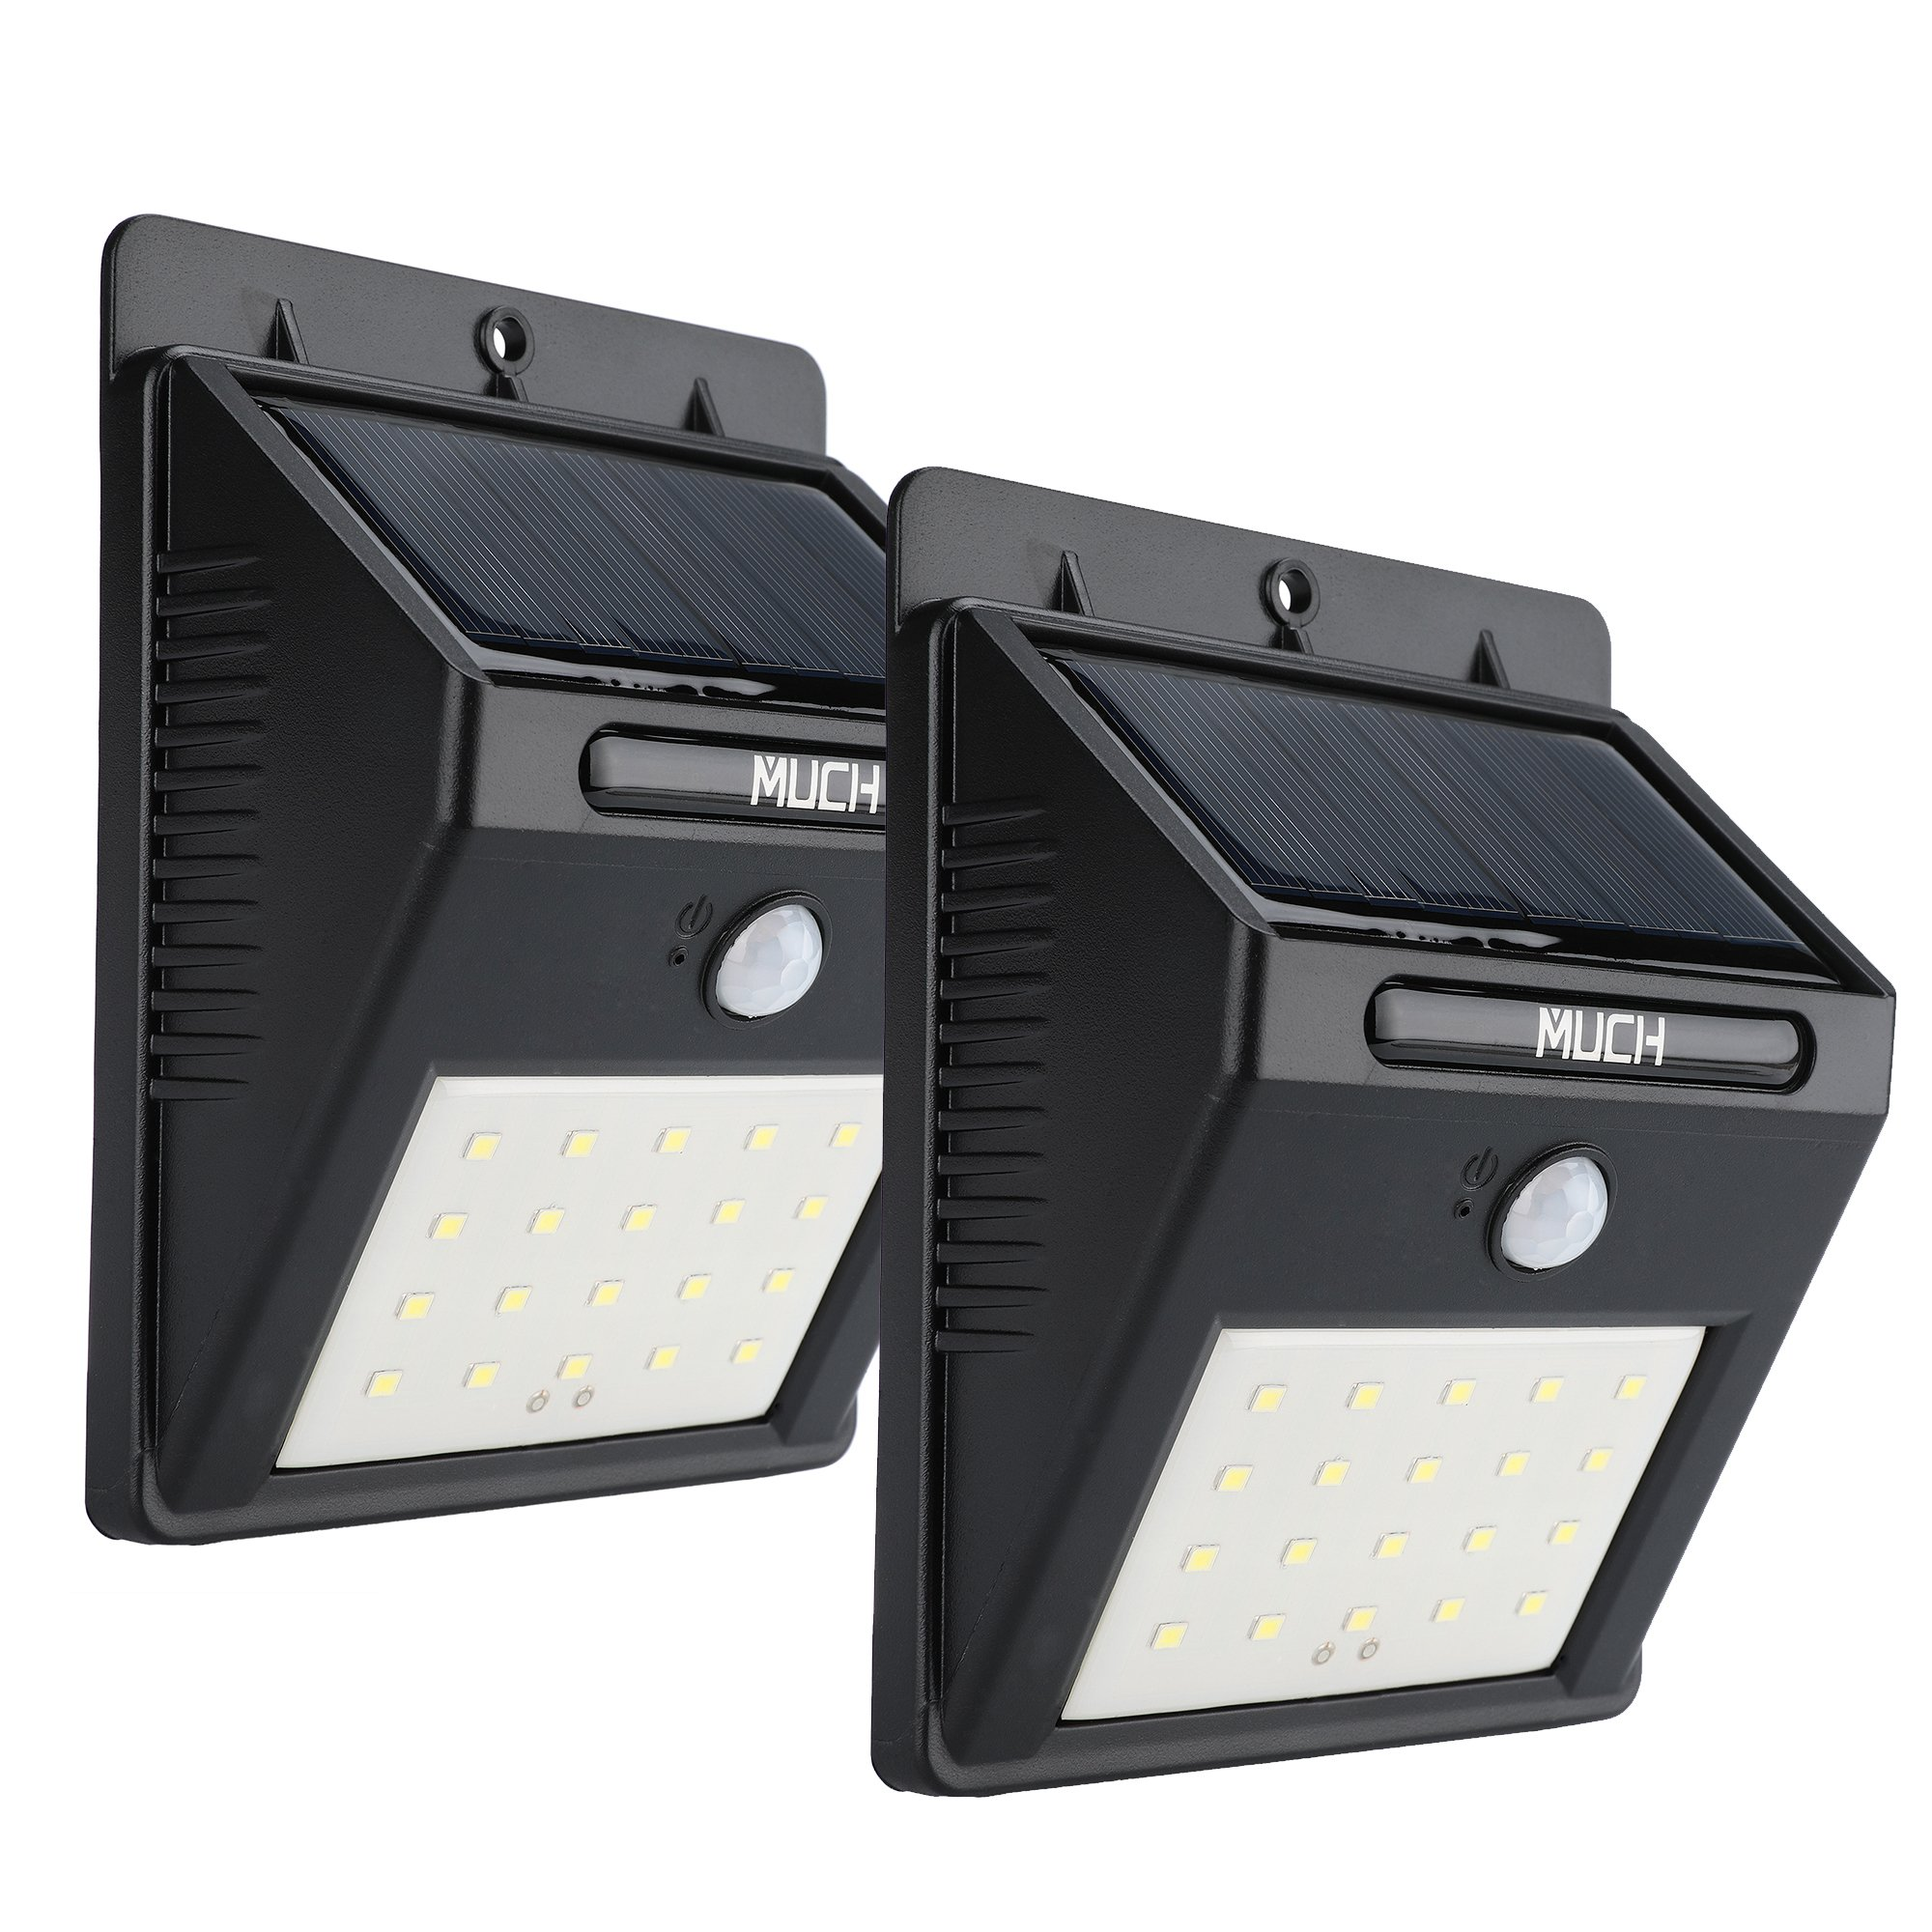 Much Solar Lights Bright 20 LED Solar Power Led Security Lights with Motion Sensor Wireless Waterproof Wall Lights for Driveway Patio Garden Path 2 Pack